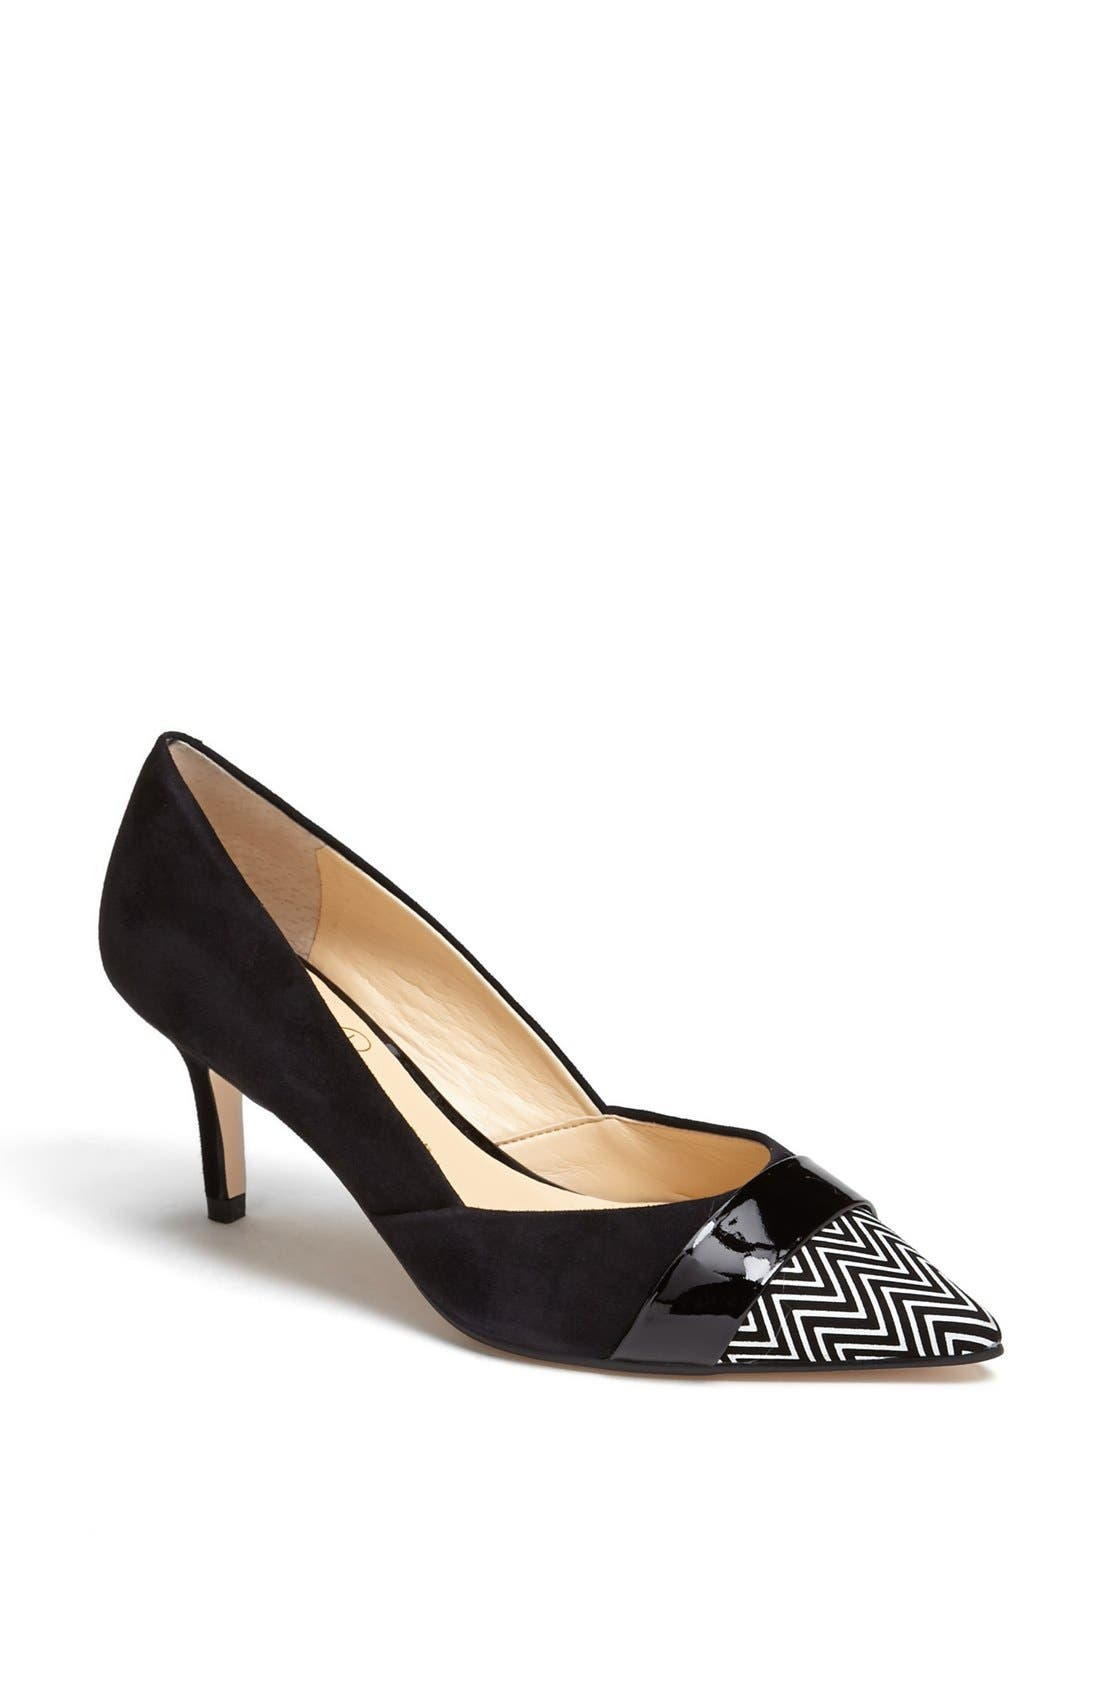 Main Image - Ivanka Trump 'Nyle' Pump (Women)